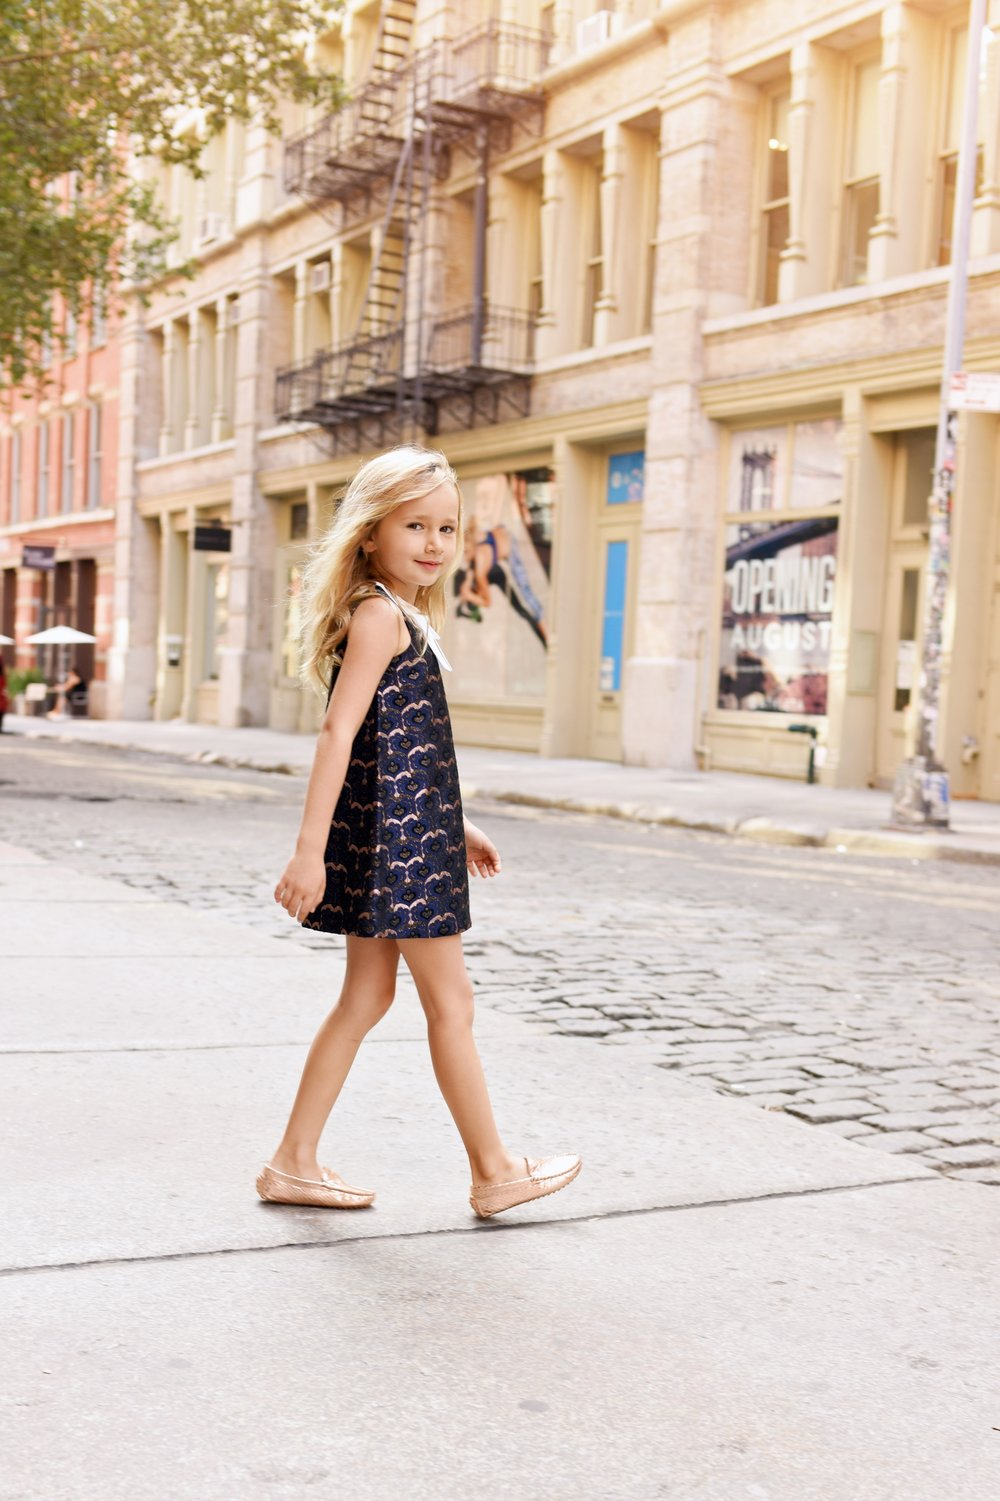 Enfant+Street+Style+by+Gina+Kim+Photography+Hucklebones+dress-1.jpeg